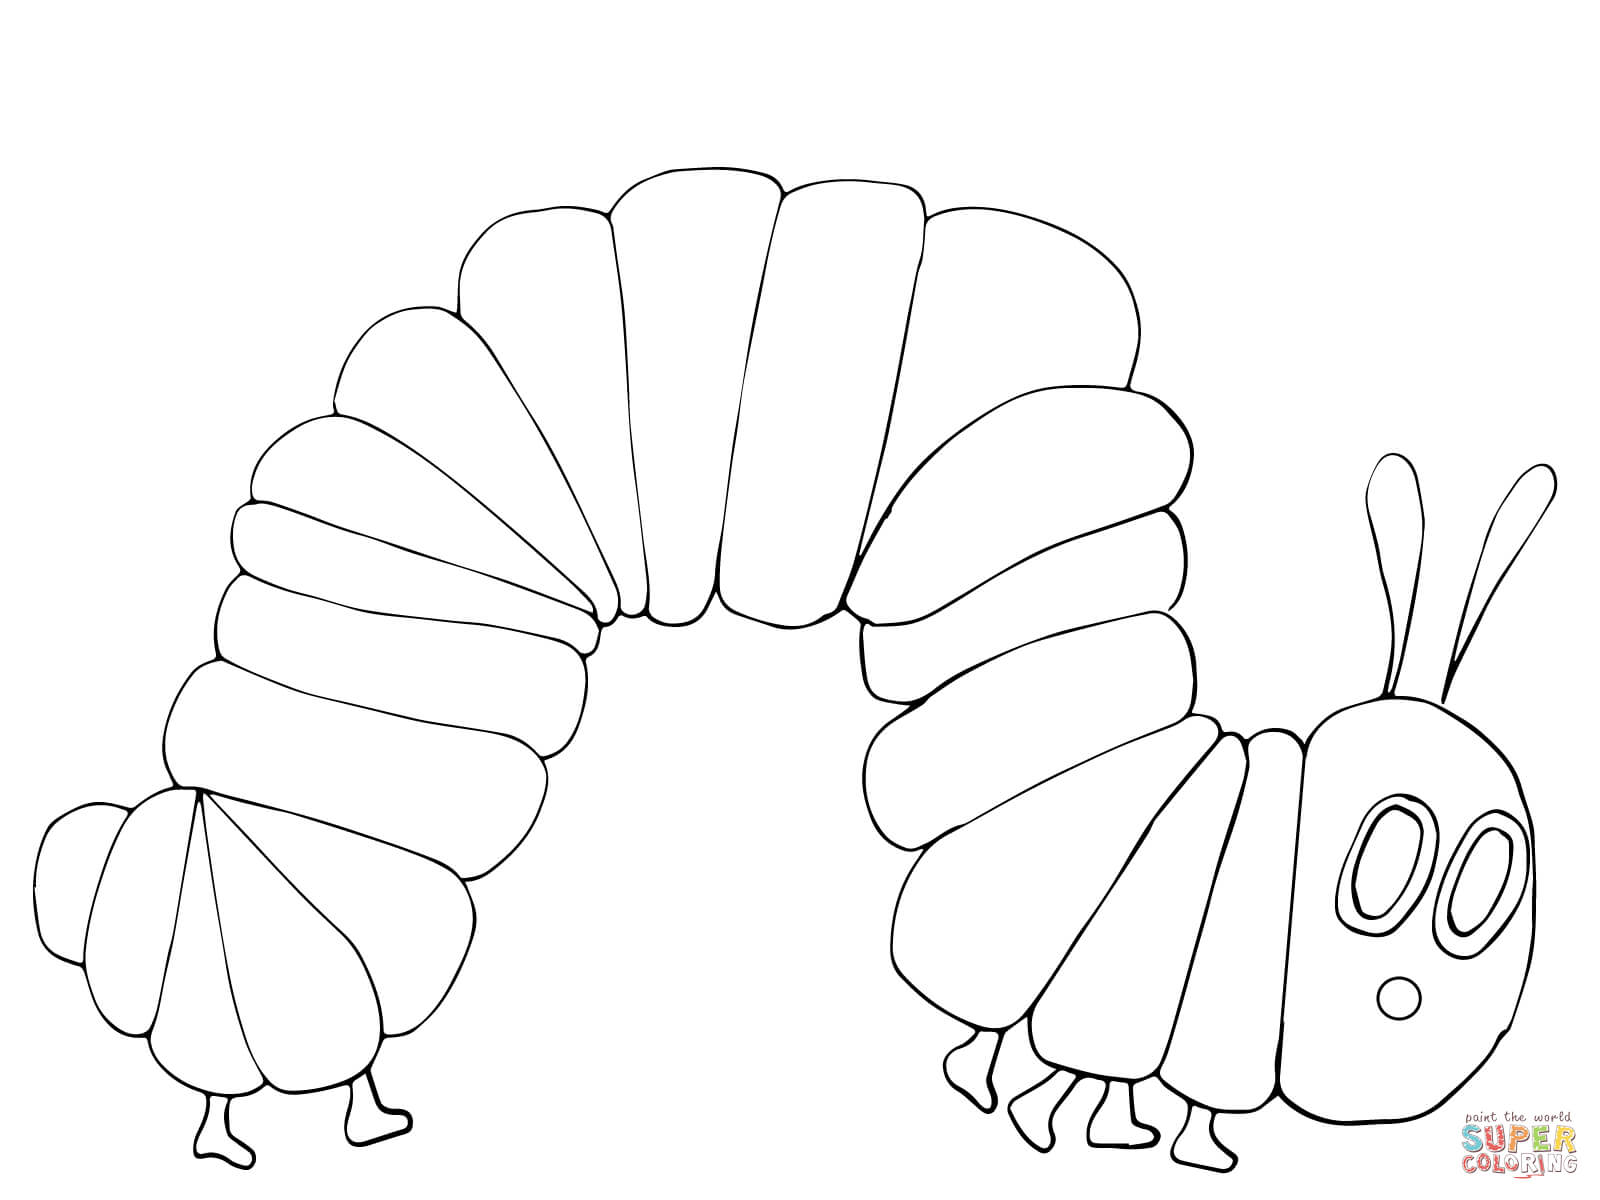 1600x1200 Endorsed Very Hungry Caterpillar Coloring Pages Free Download Page